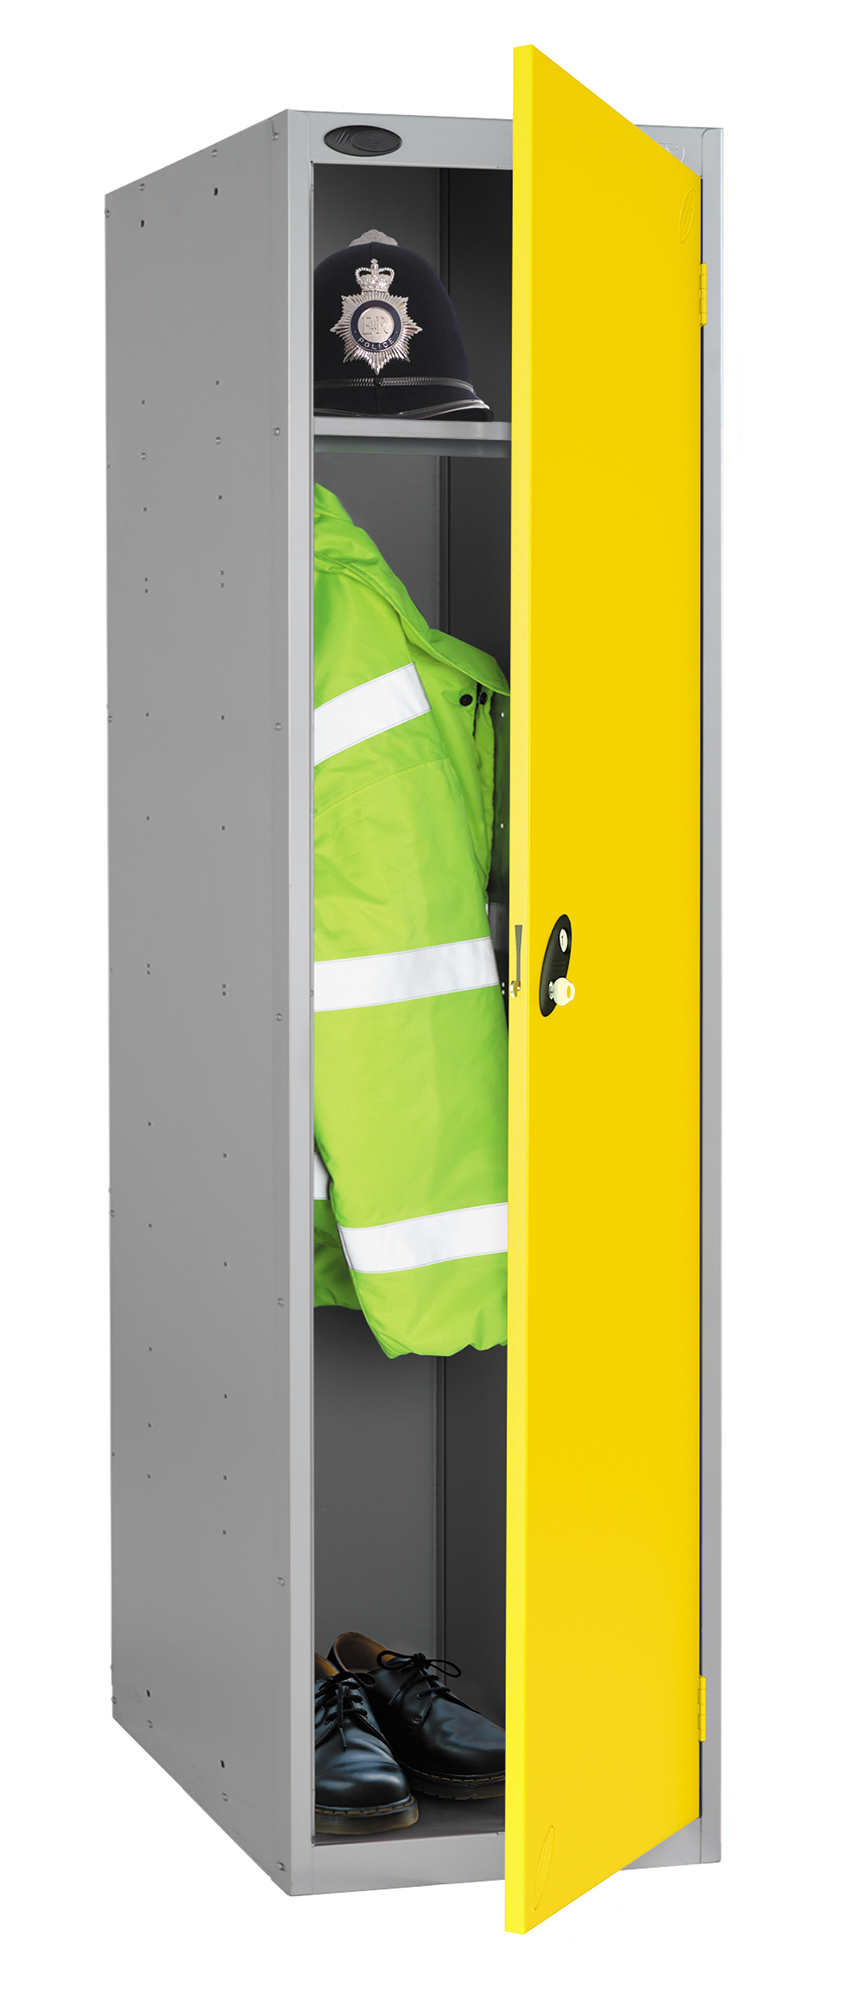 Probe high capacity police locker in yellow colour is designed to accommodate personal body armor